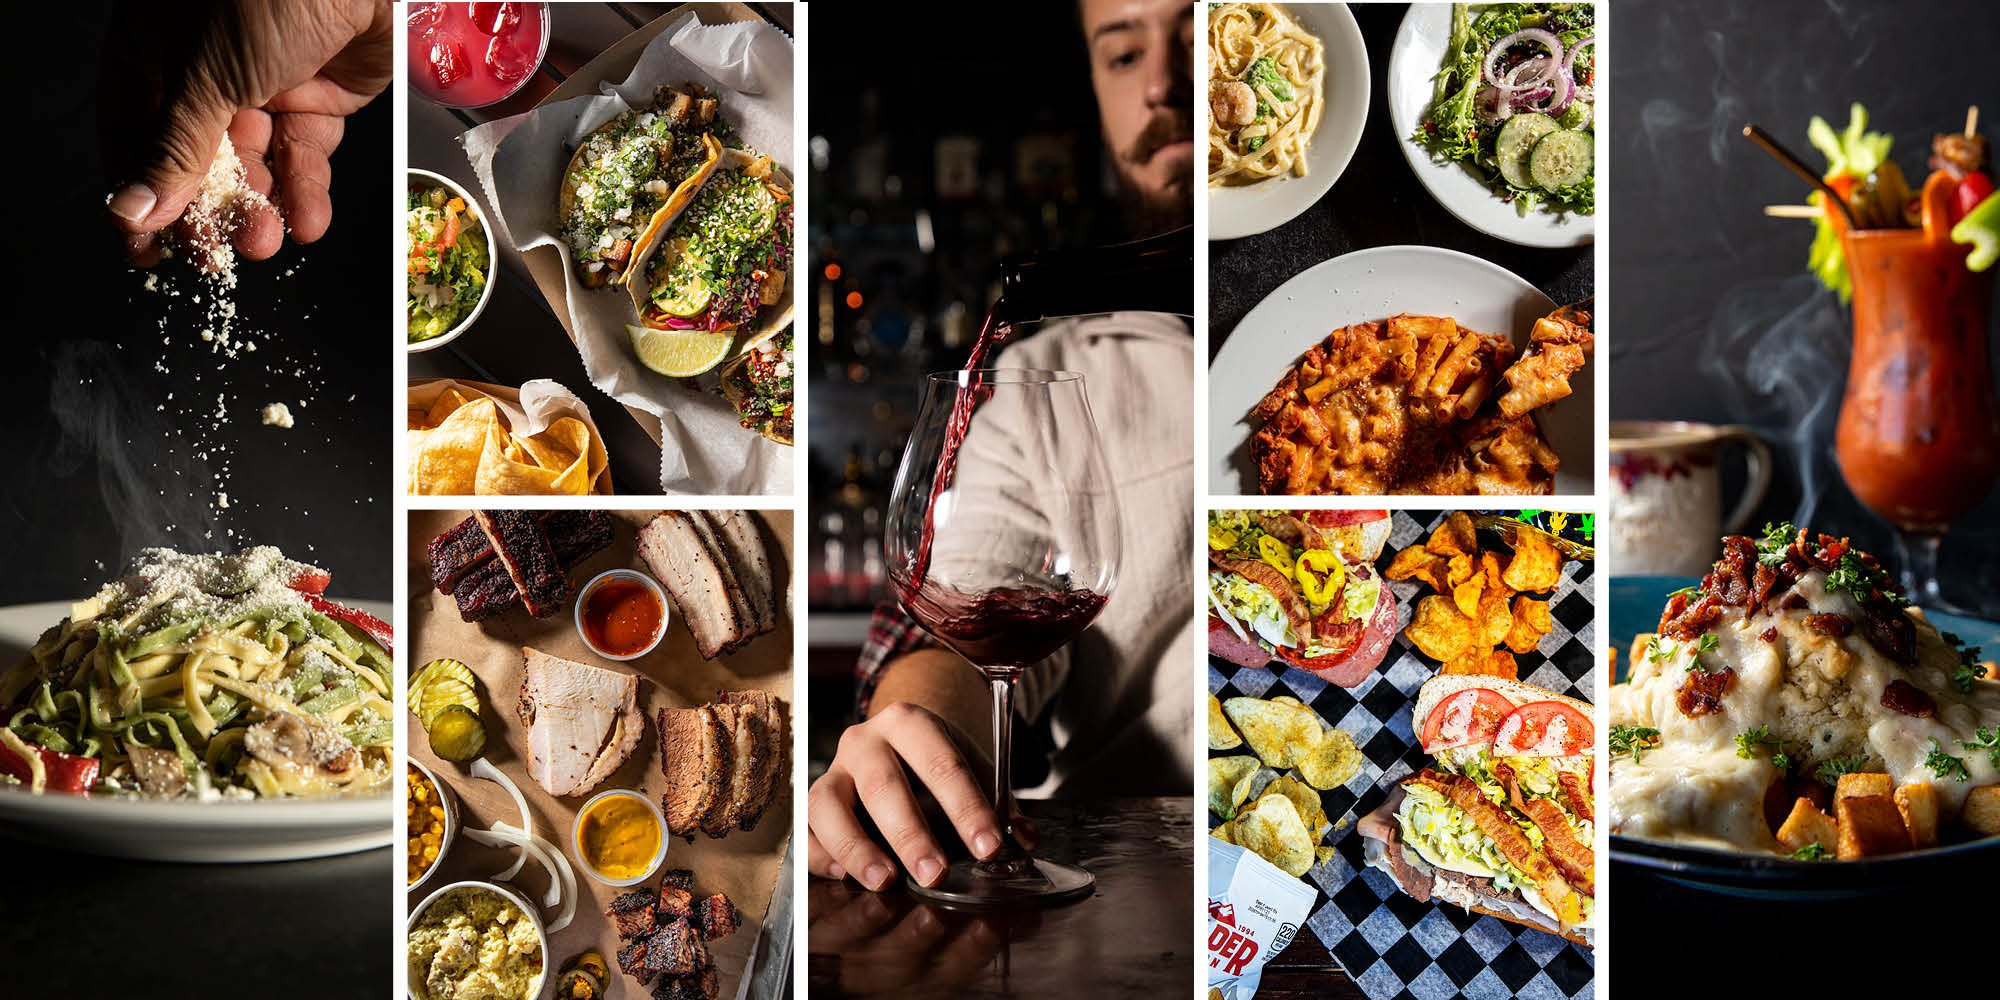 417 Magazine's Best of 417 Food & Drink category